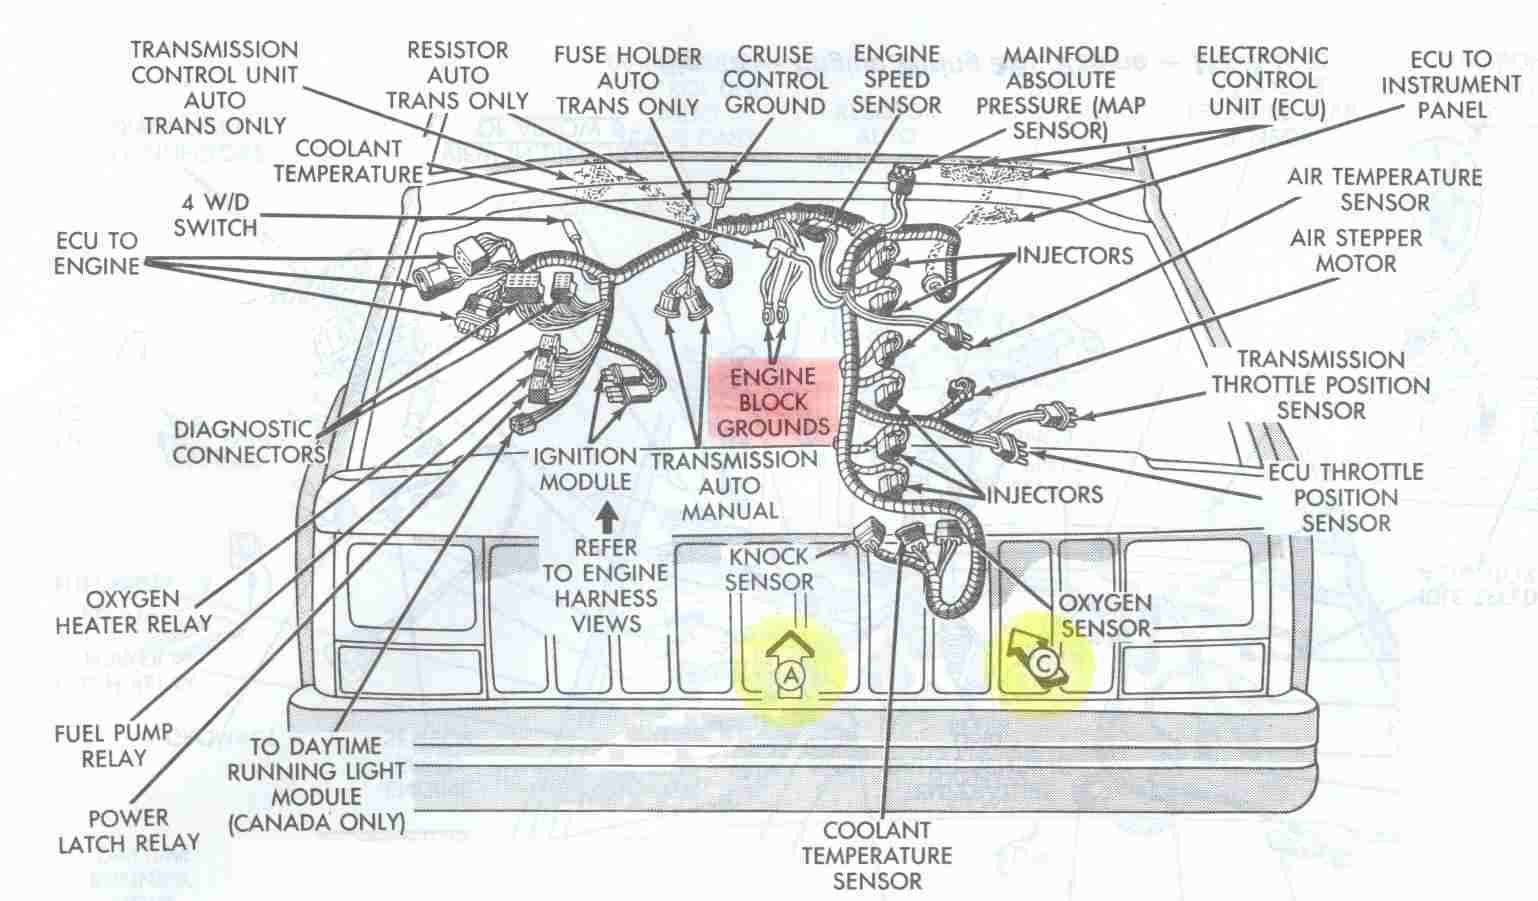 Engine Bay schematic showing major electrical ground points ... on